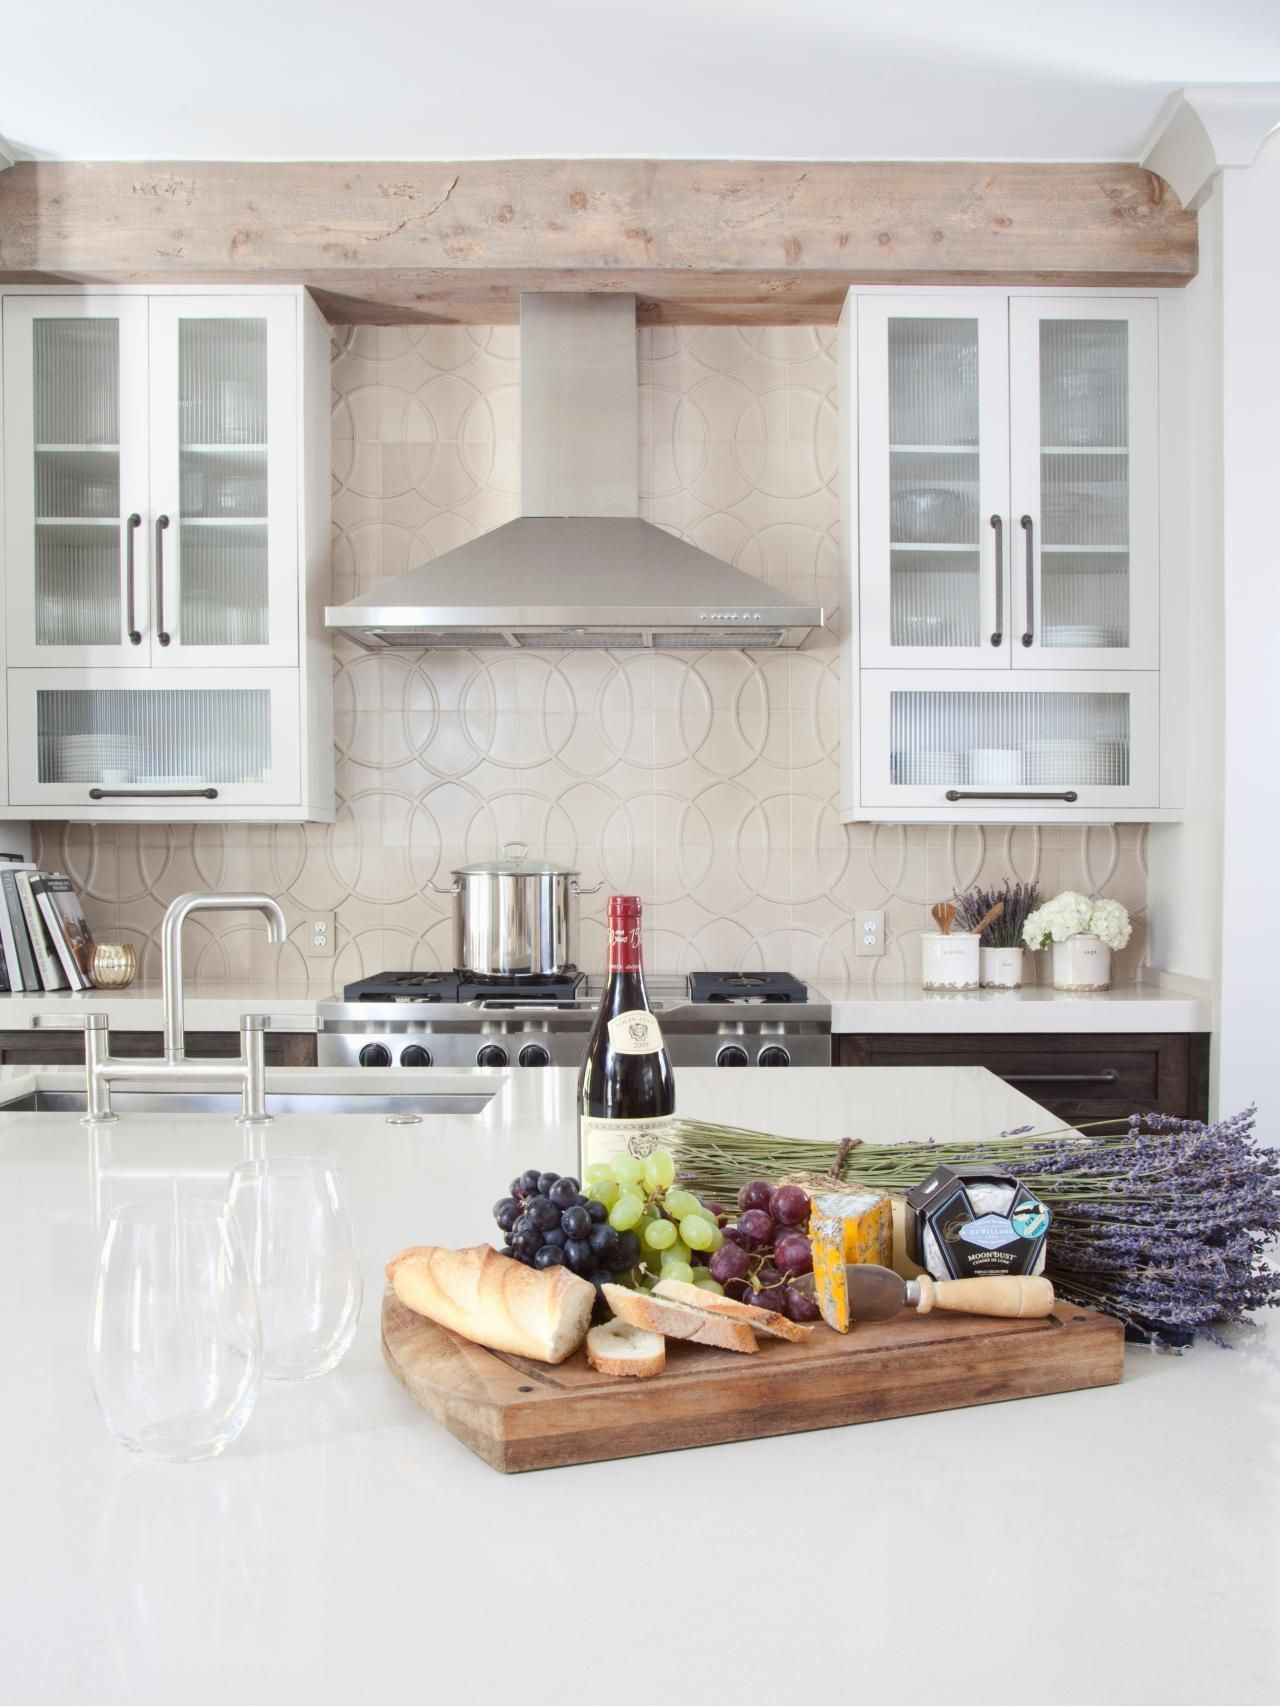 This white kitchen exemplifies transitional design at its